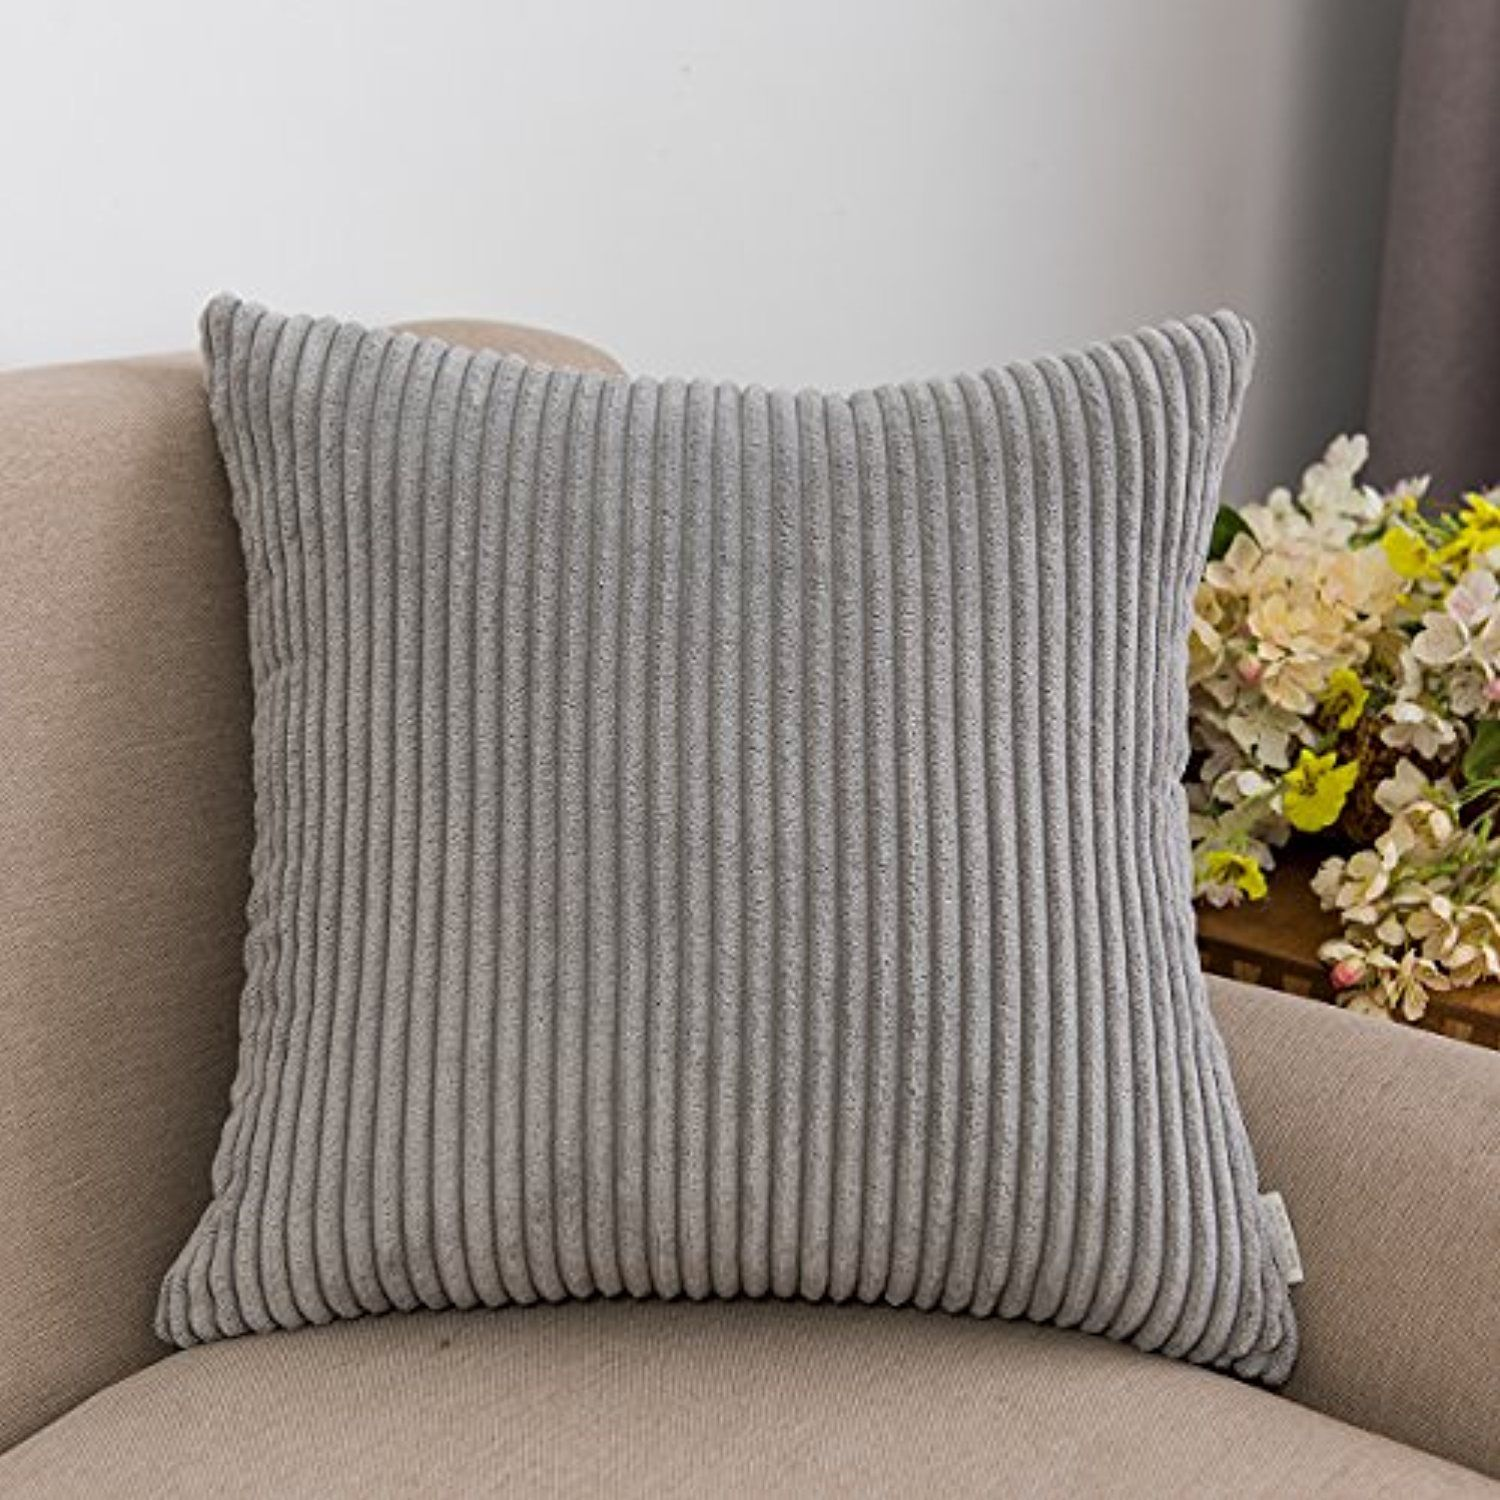 Jeanerlor Soft Corduroy Plush Velvet Decorative Striped Throw Pillow Case